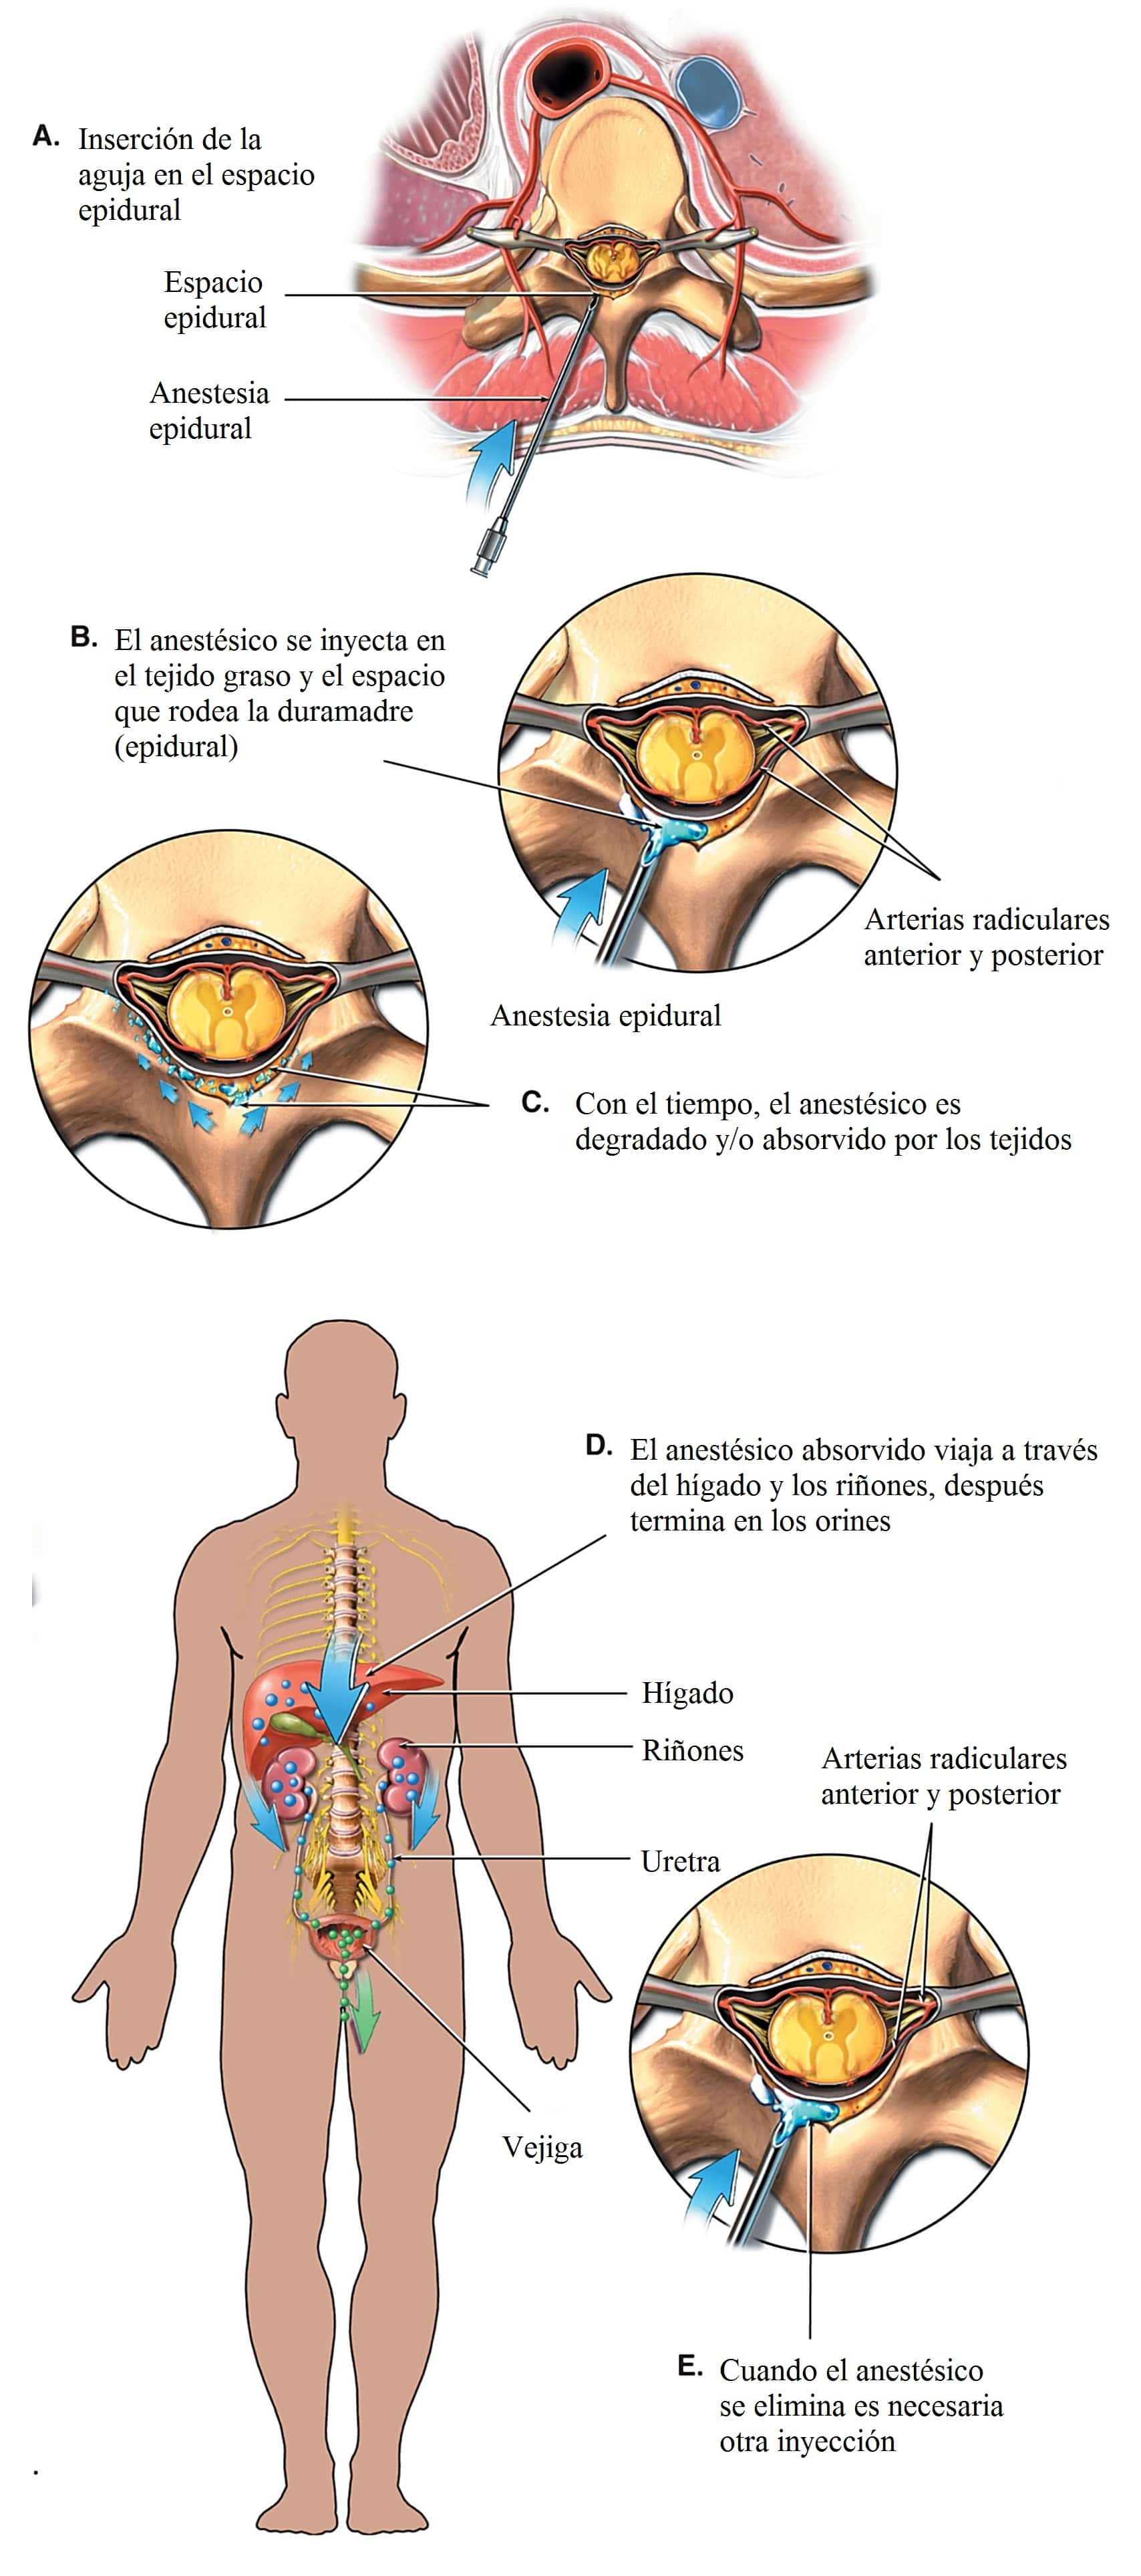 anestesia-epidural-local-general